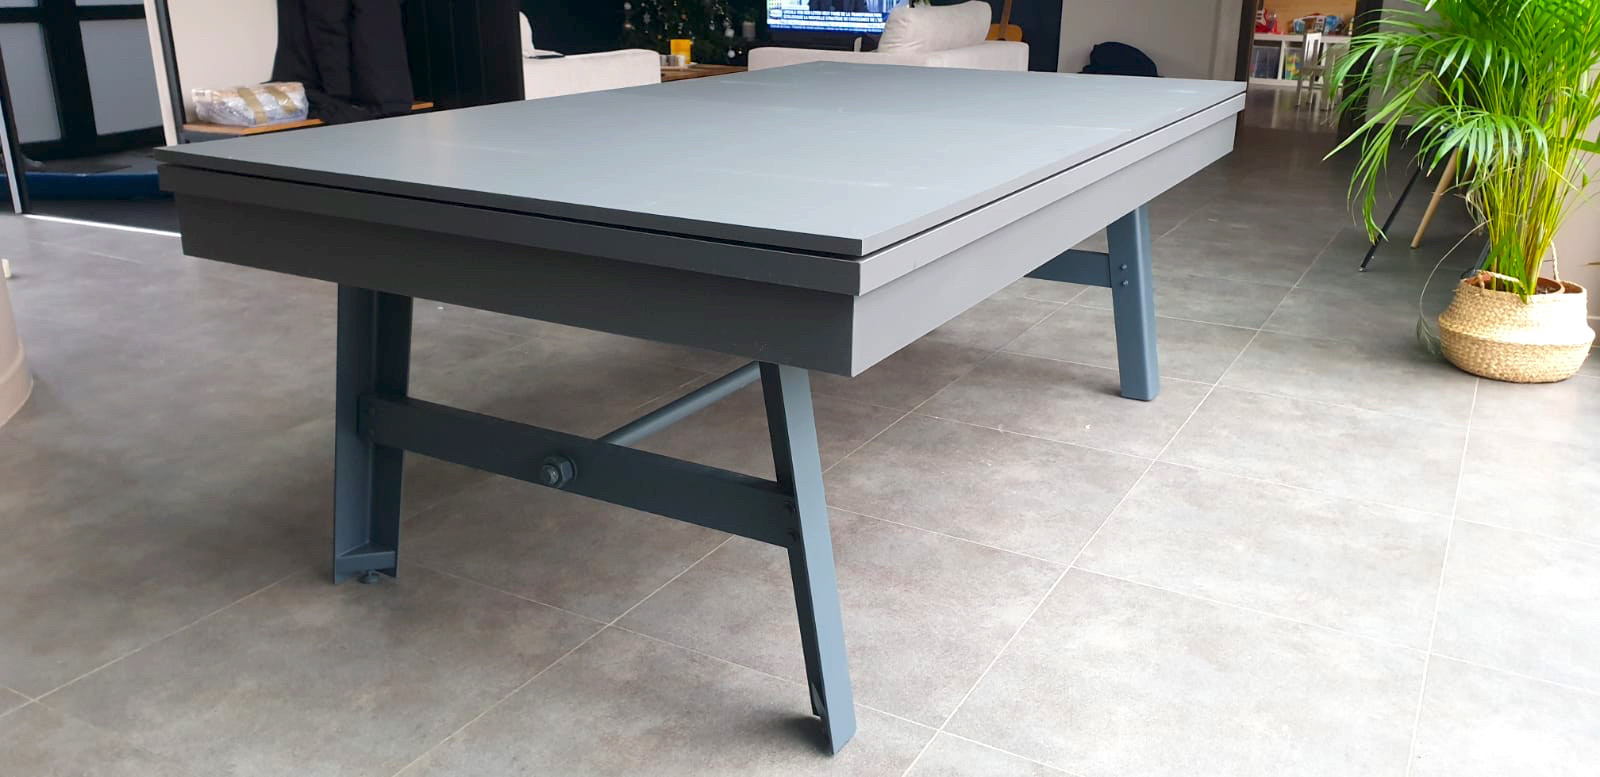 Billard table VINTAGE finition gris graphite et pied acier gris anthracite avec plateau table ST 3 parties